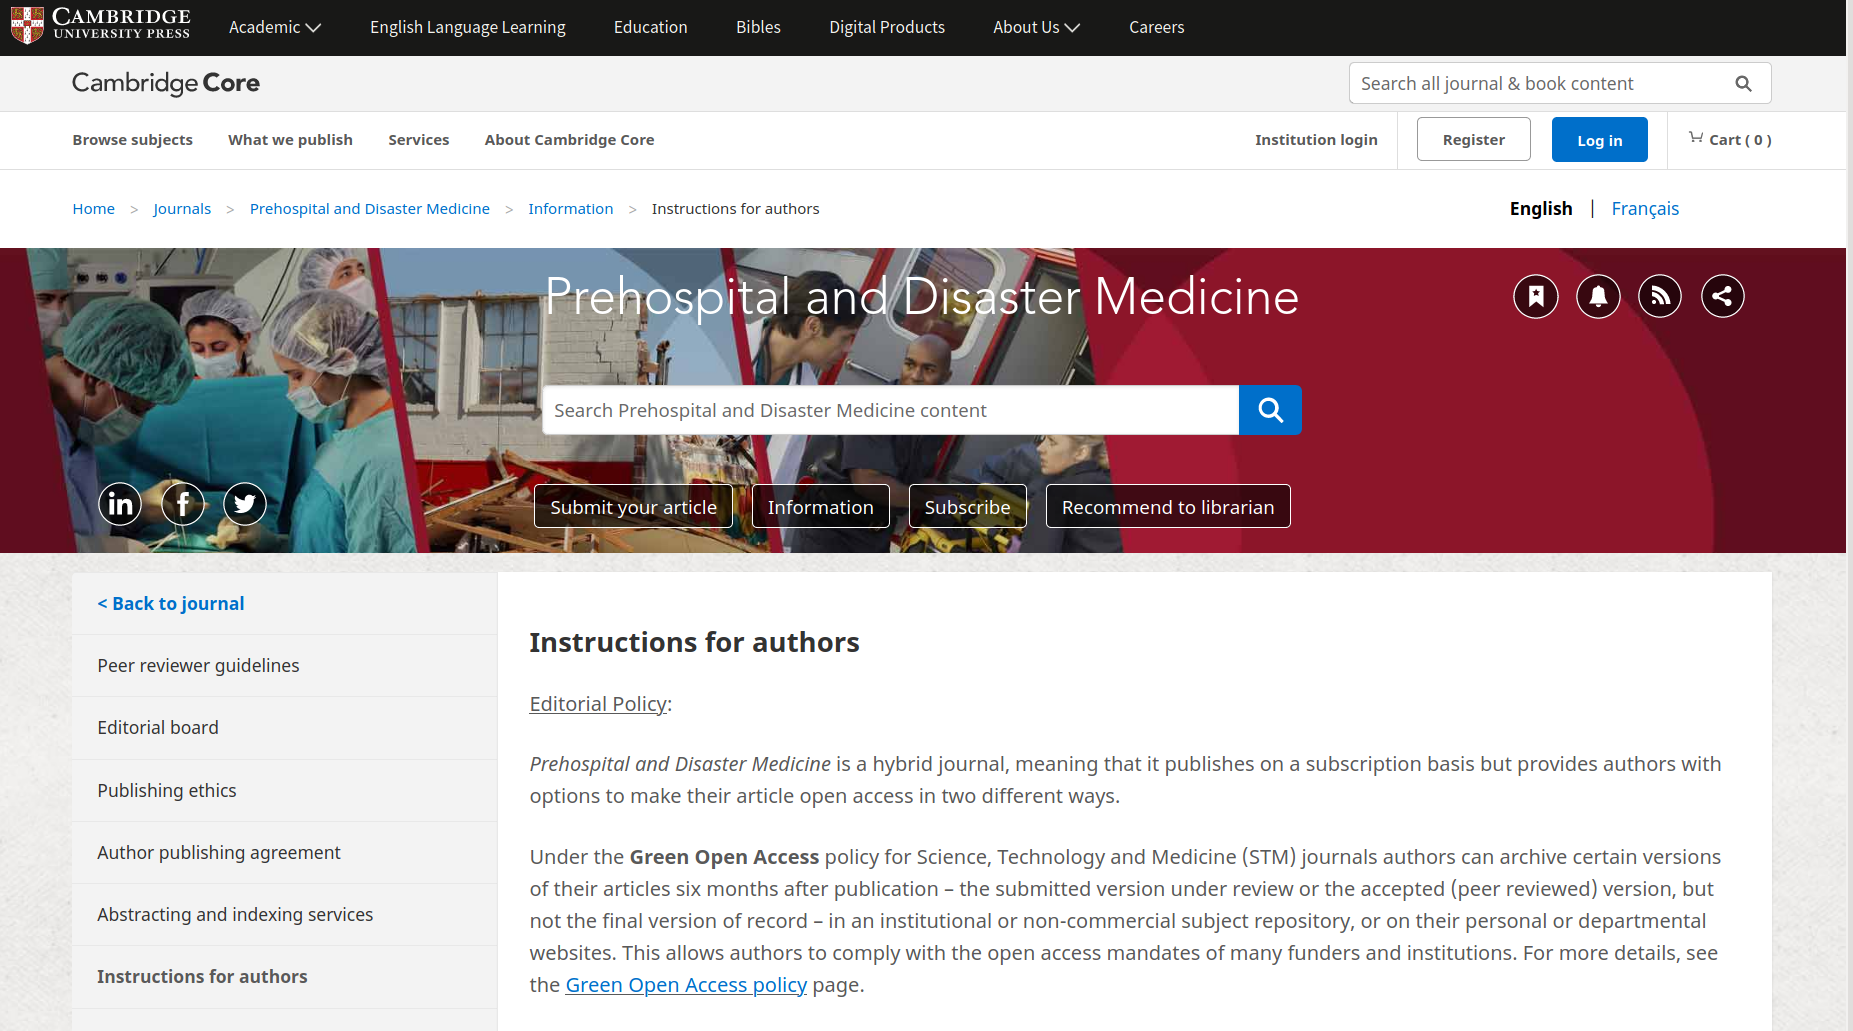 Follow the Instructions for Authors